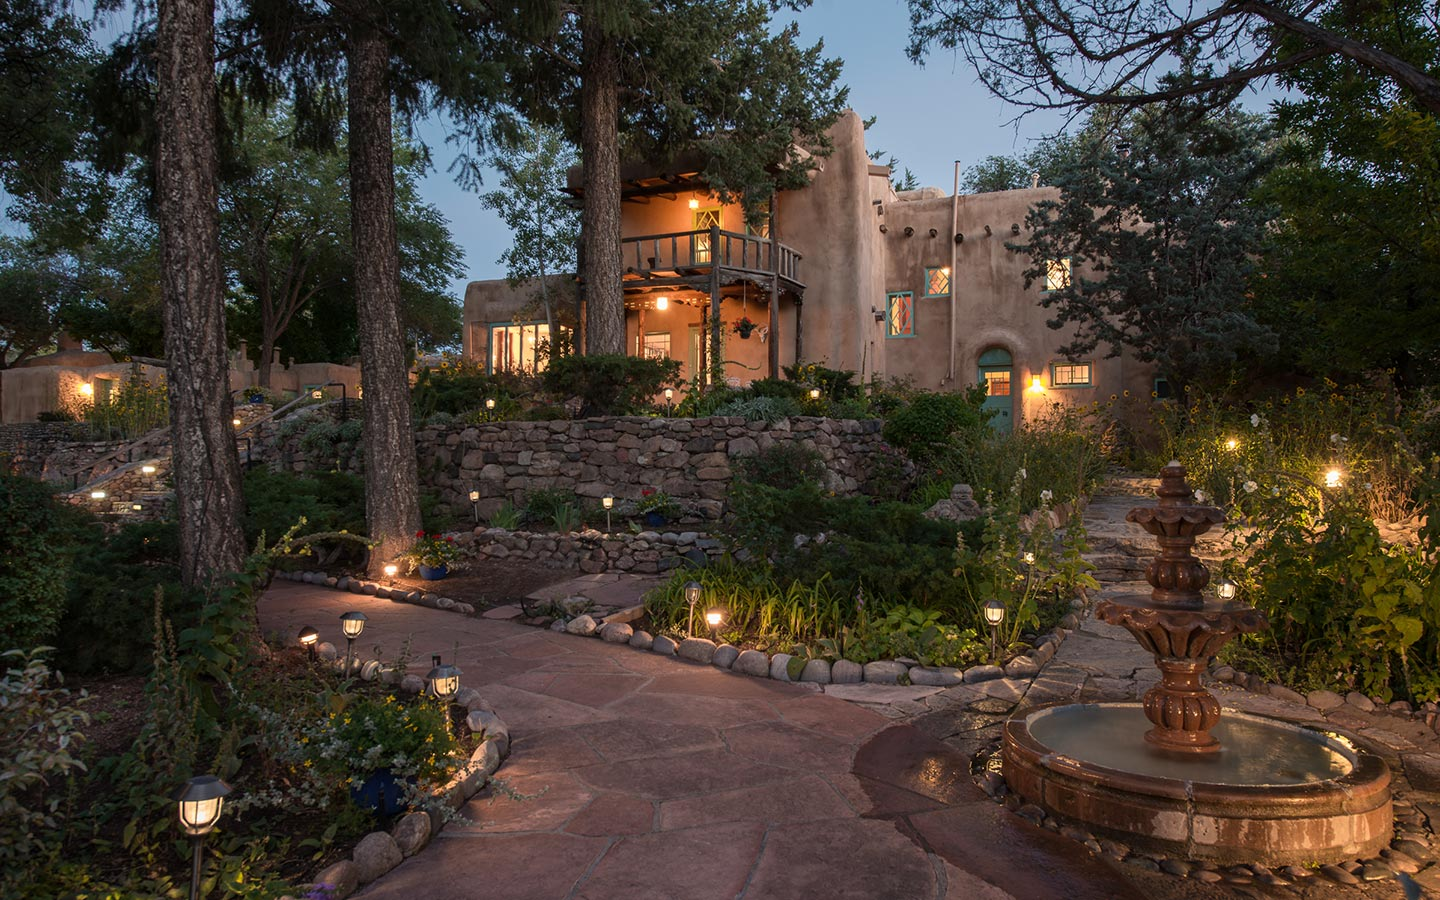 Santa Fe Bed and Breakfast at Dusk